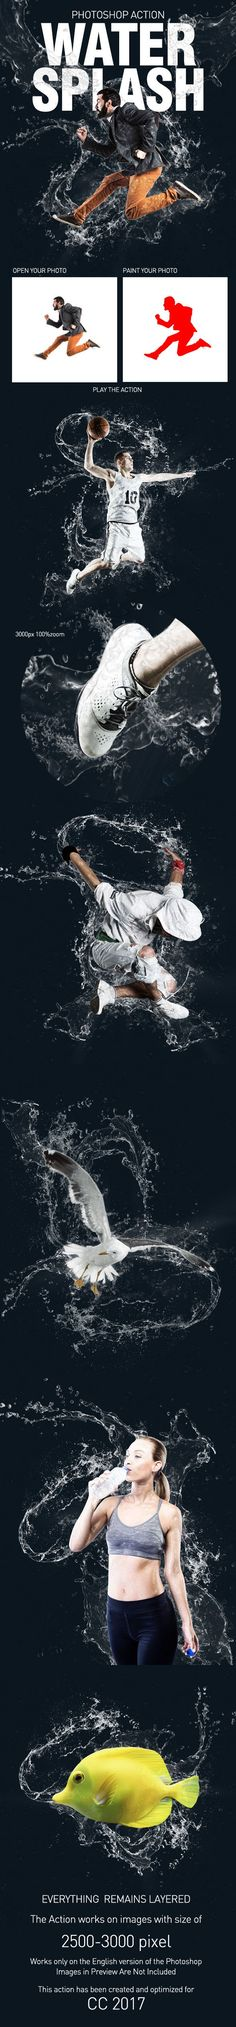 Water Splash Action - #Photo Effects #Actions